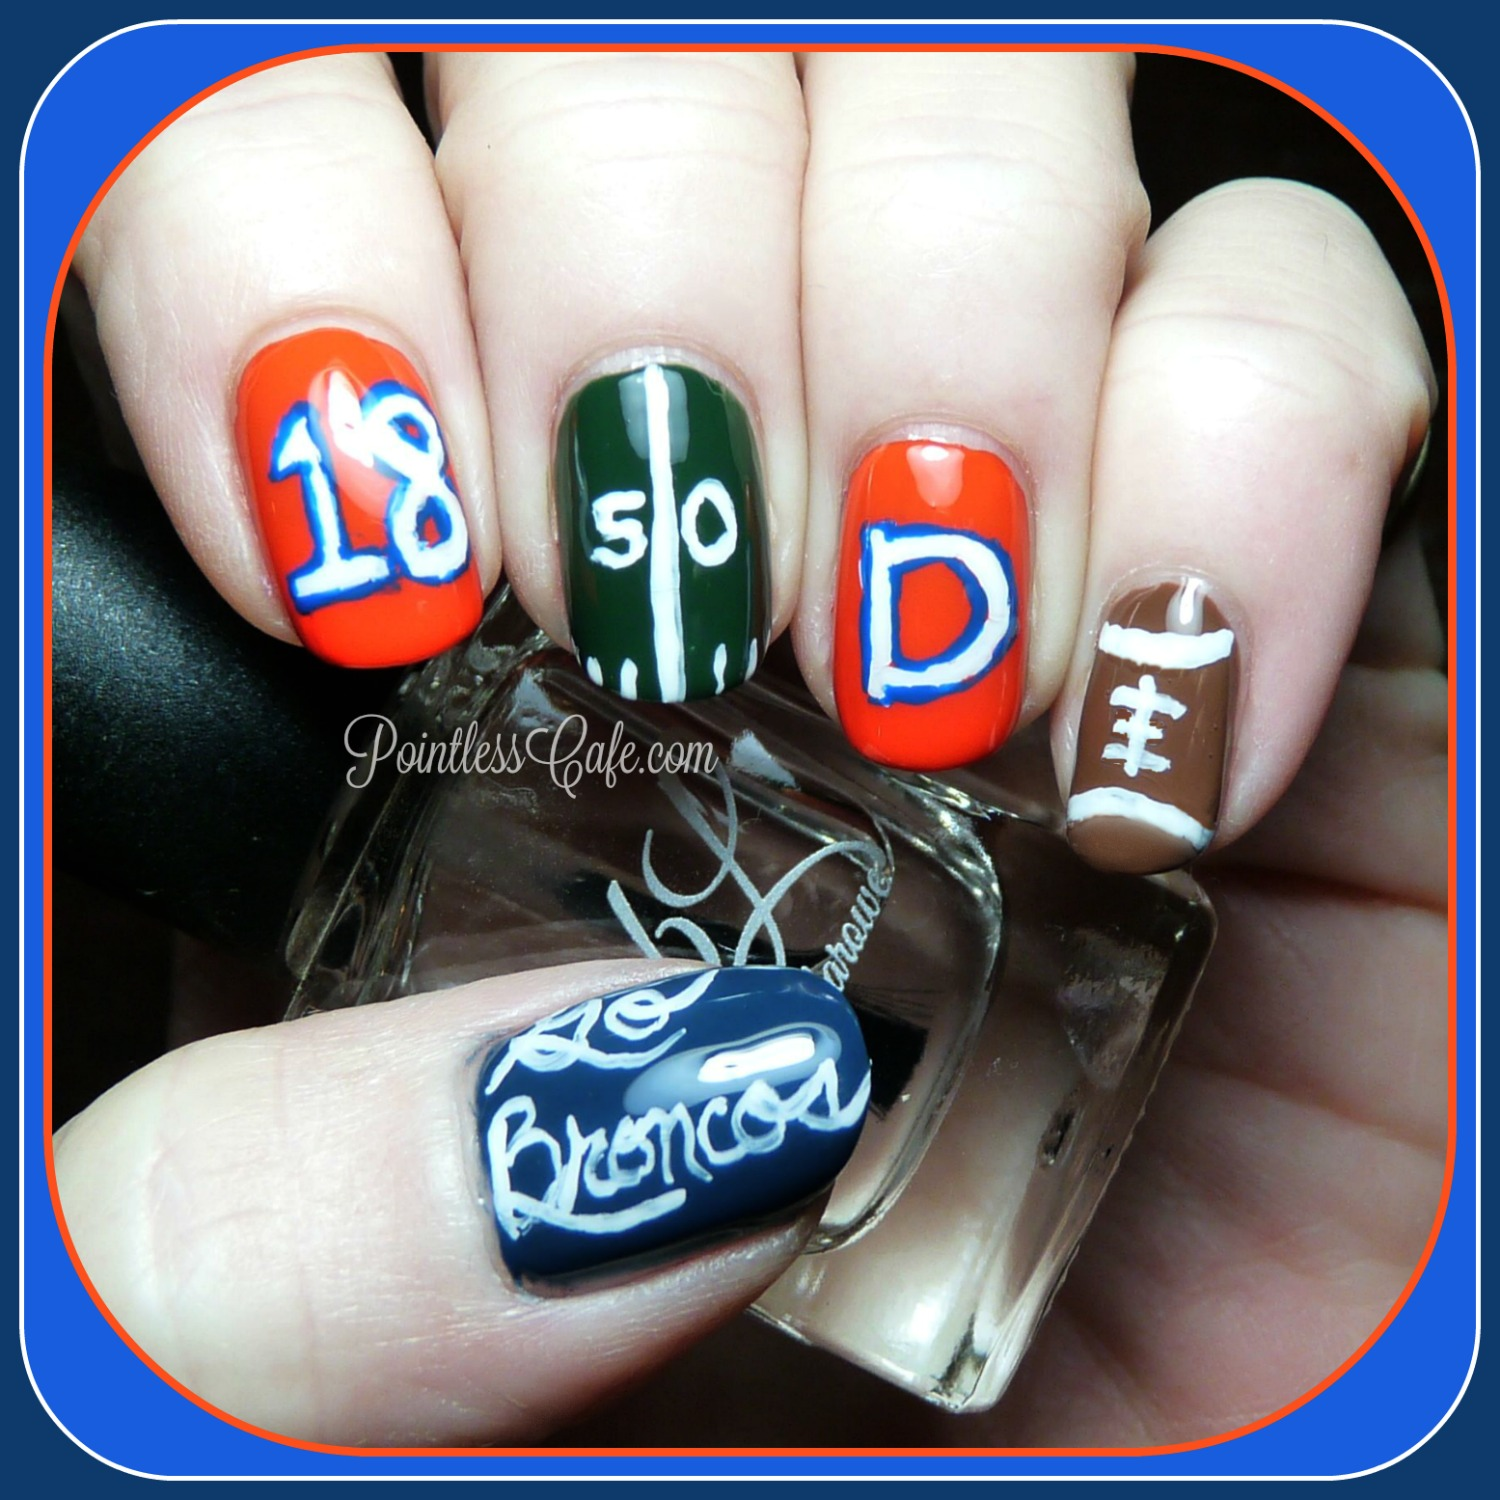 Nail of the Day: Super Bowl Nails - Go Broncos! | Pointless Cafe